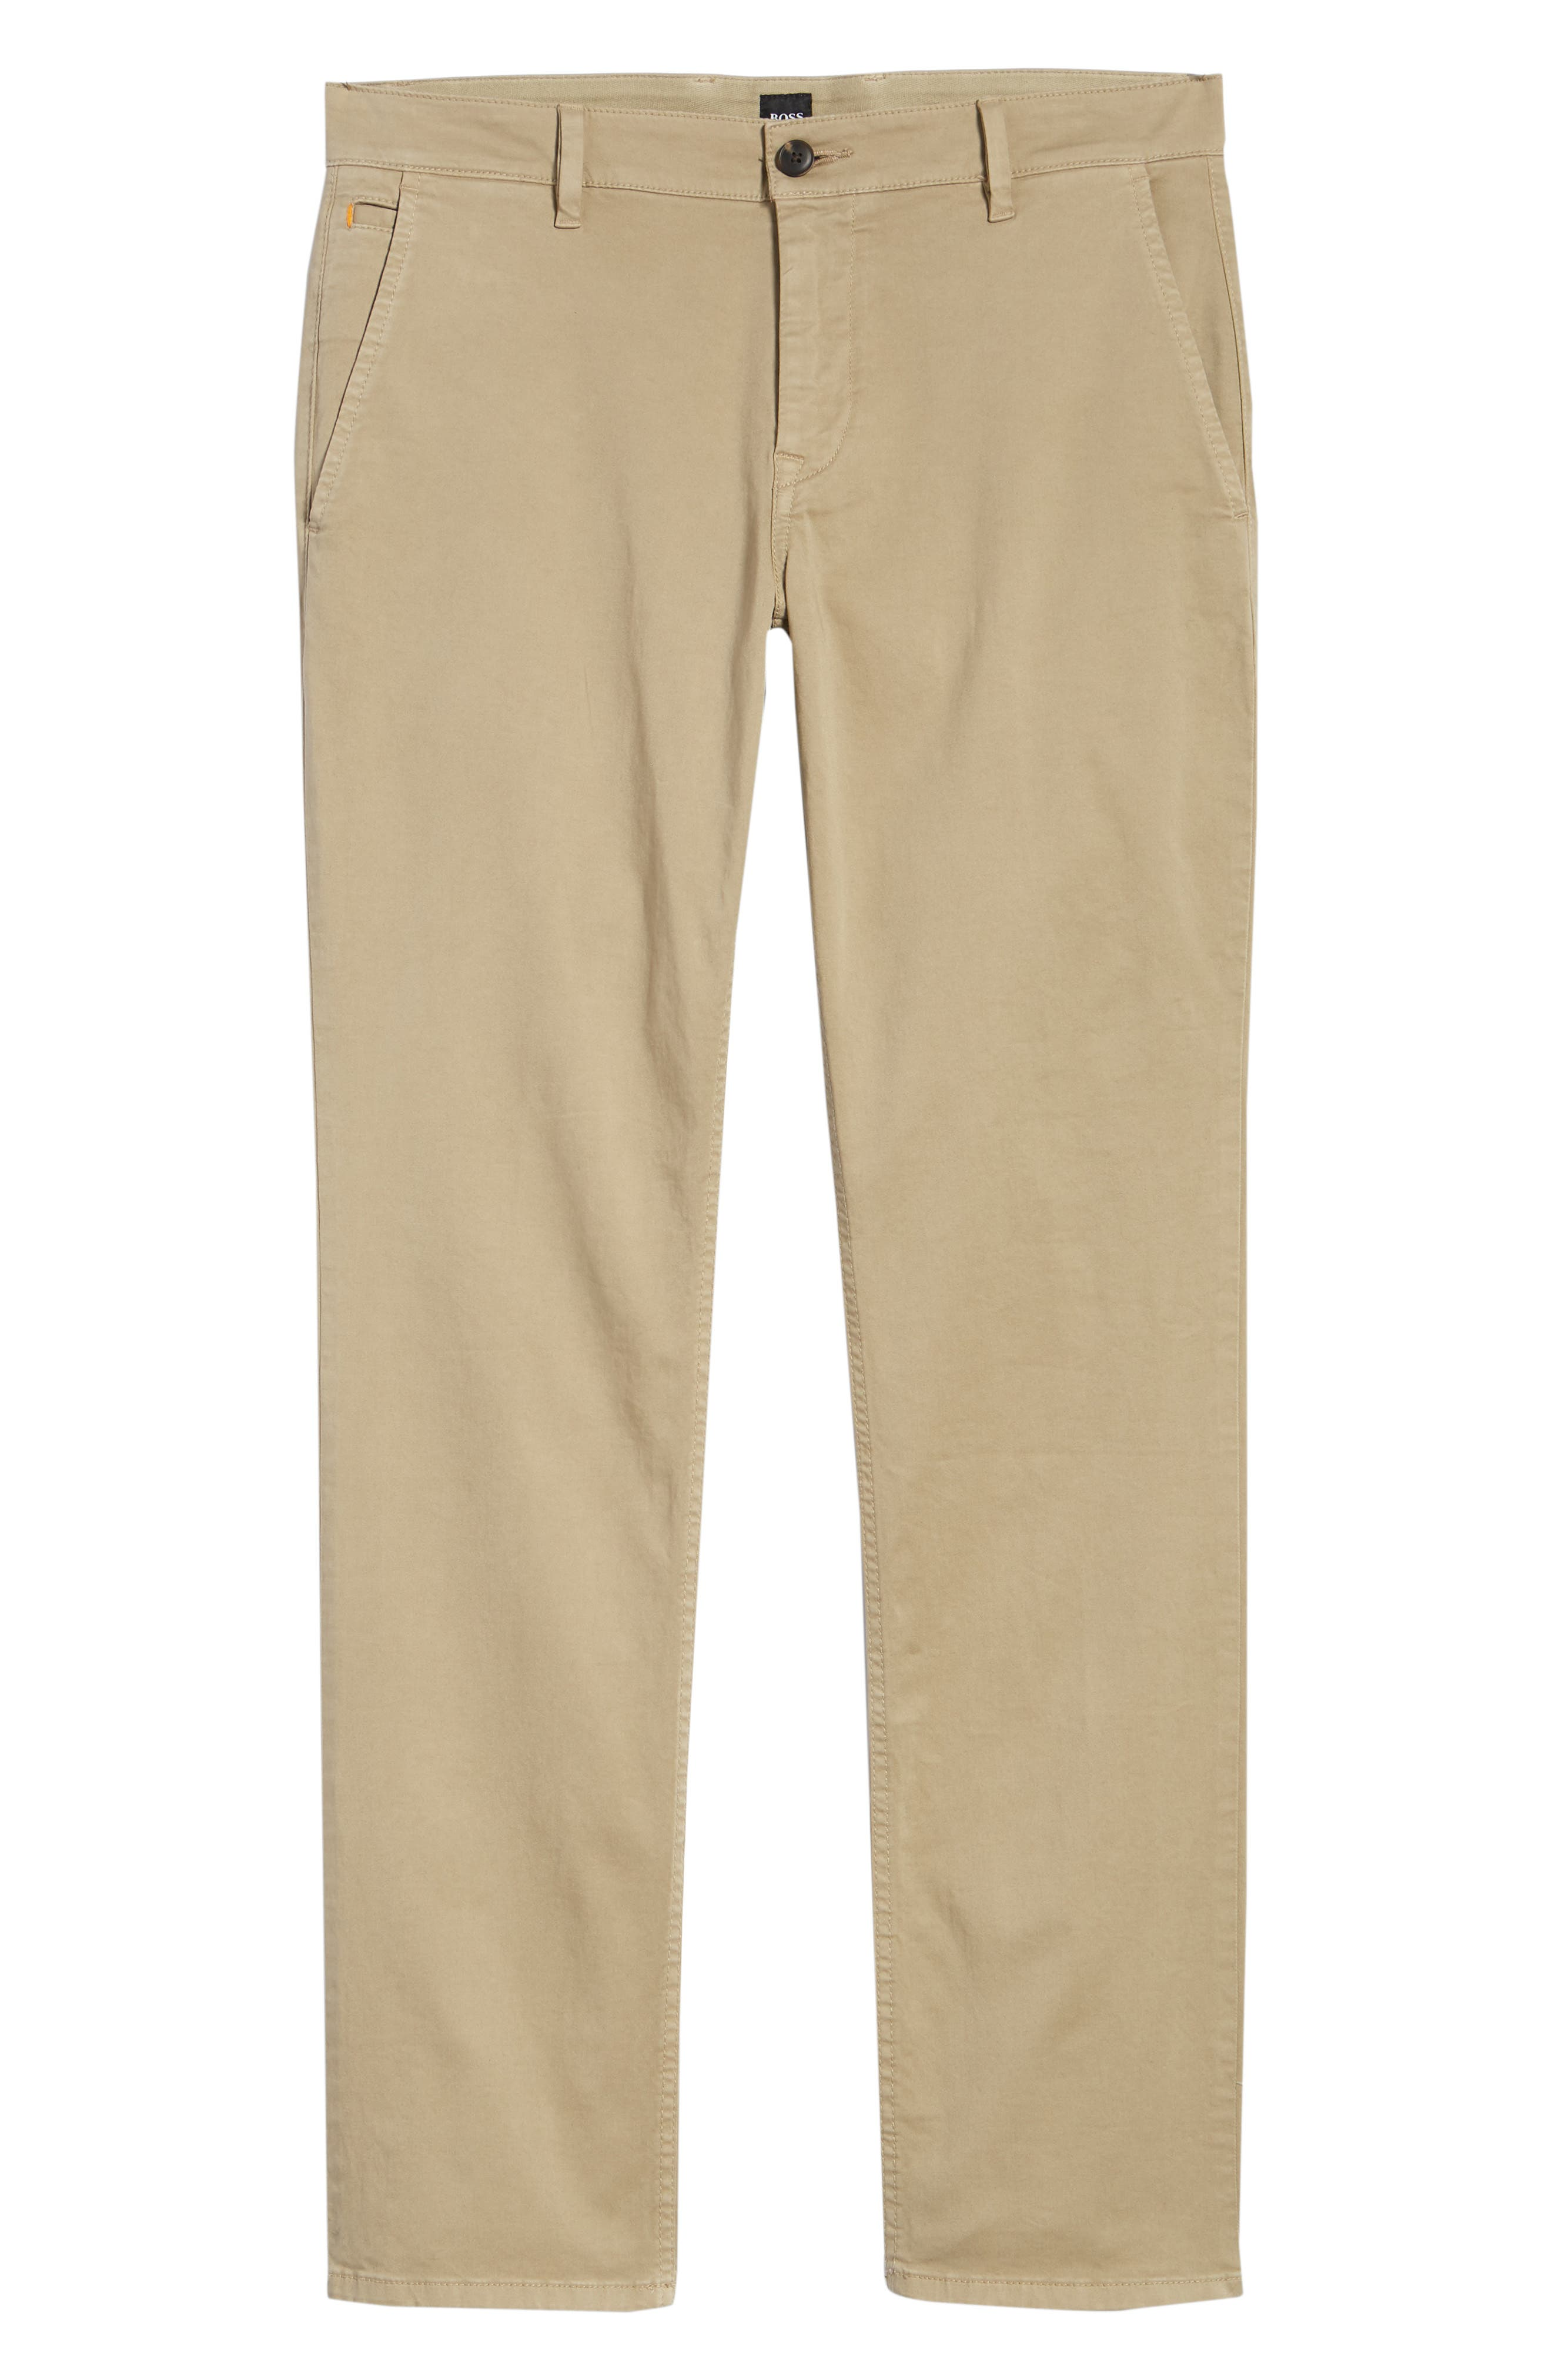 Stretch Chino Pants,                             Alternate thumbnail 6, color,                             Brown